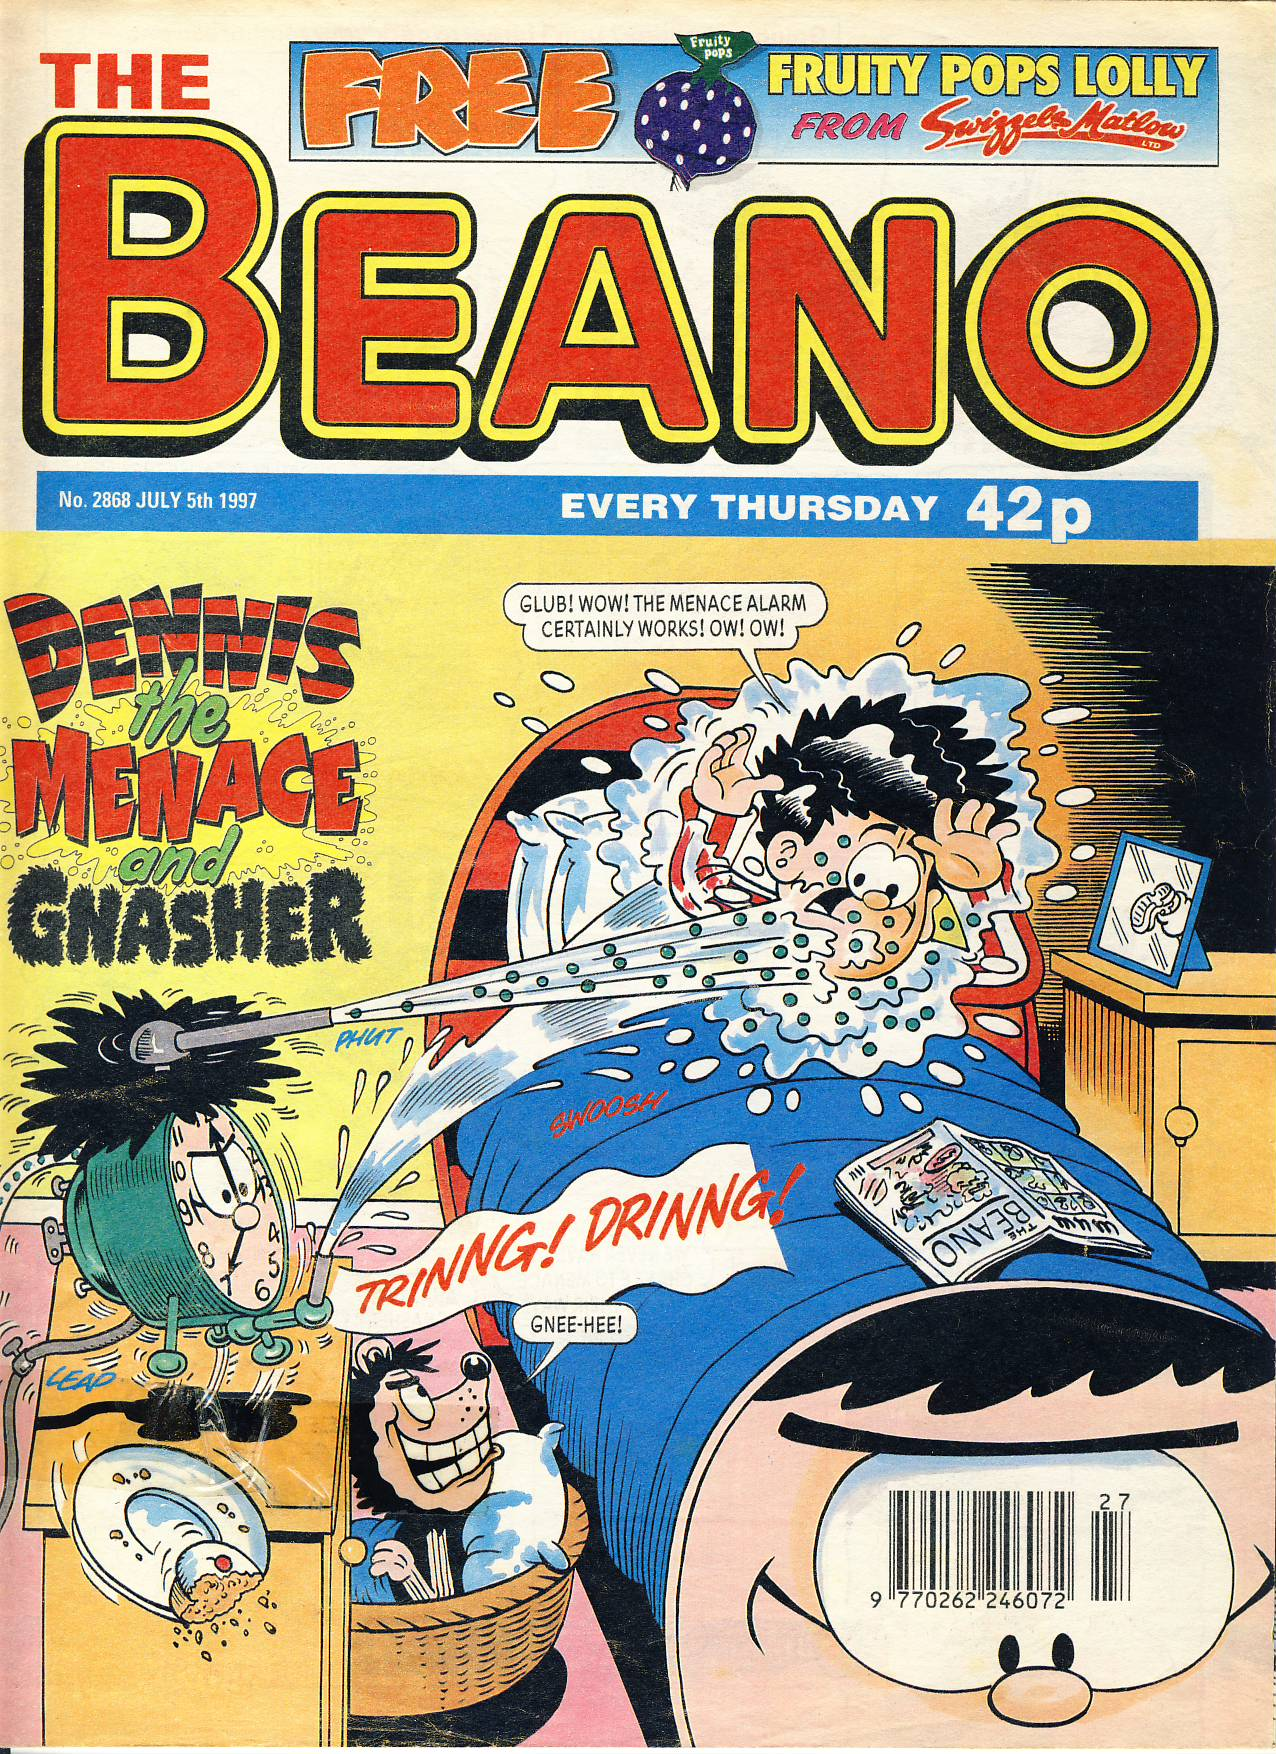 1997 July 5th BEANO vintage comic Good Gift Christmas Present Birthday Anniversary ref210 a pre-owned item in very good read condition.